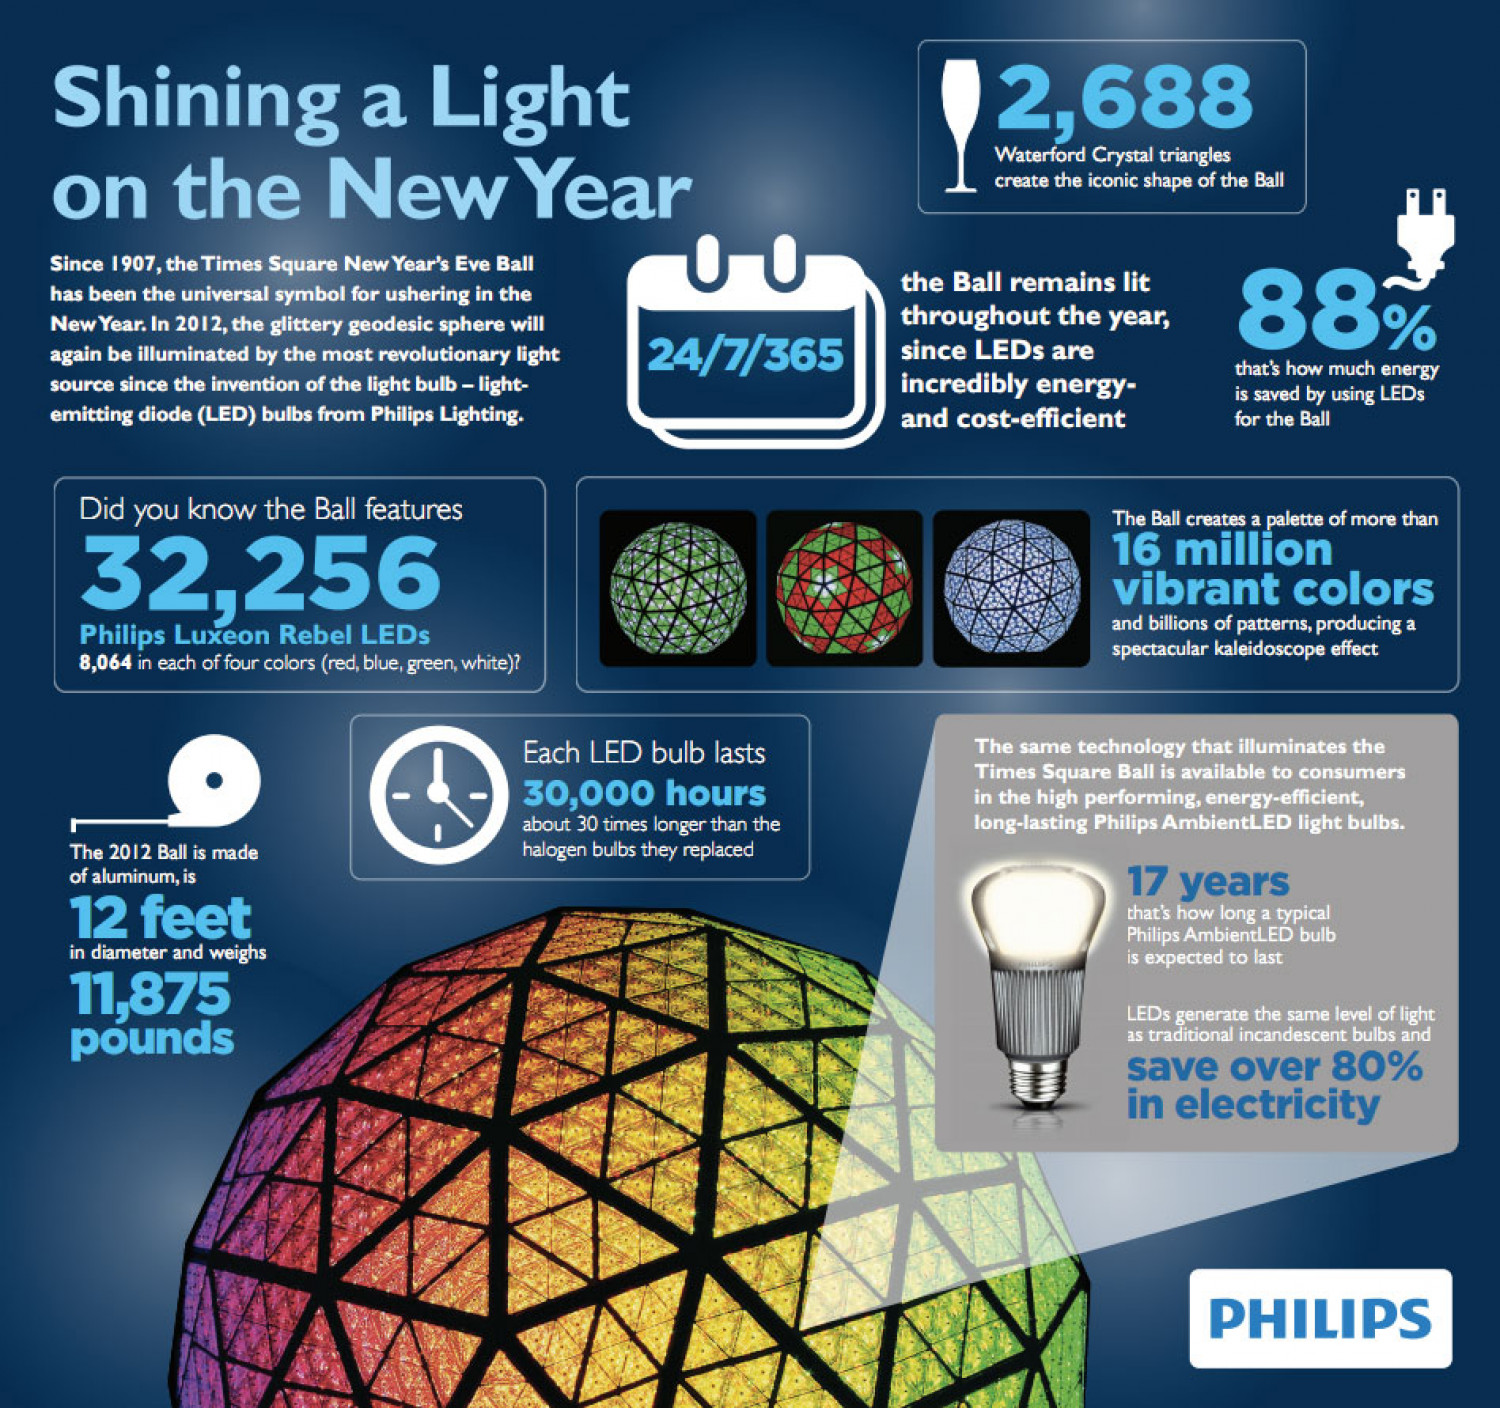 Shining a Light on the New Year Infographic